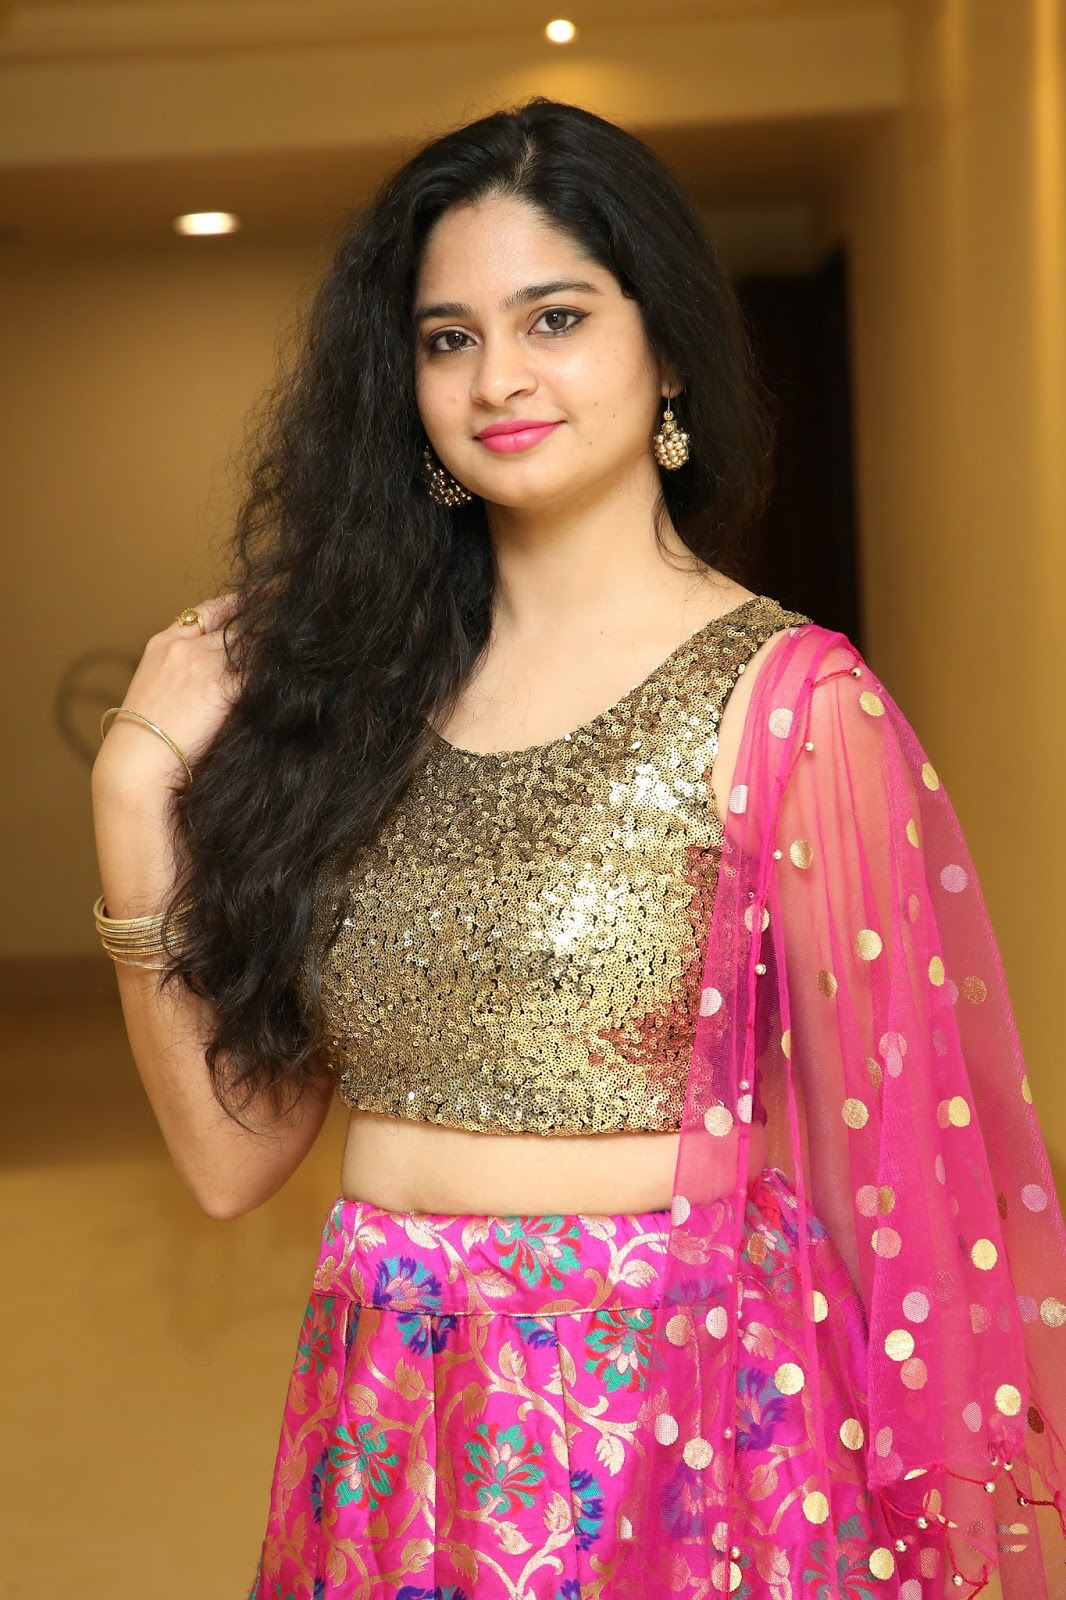 Purvi Thakkar in Golden choli Printed Pink Ghagra Spicy Pics